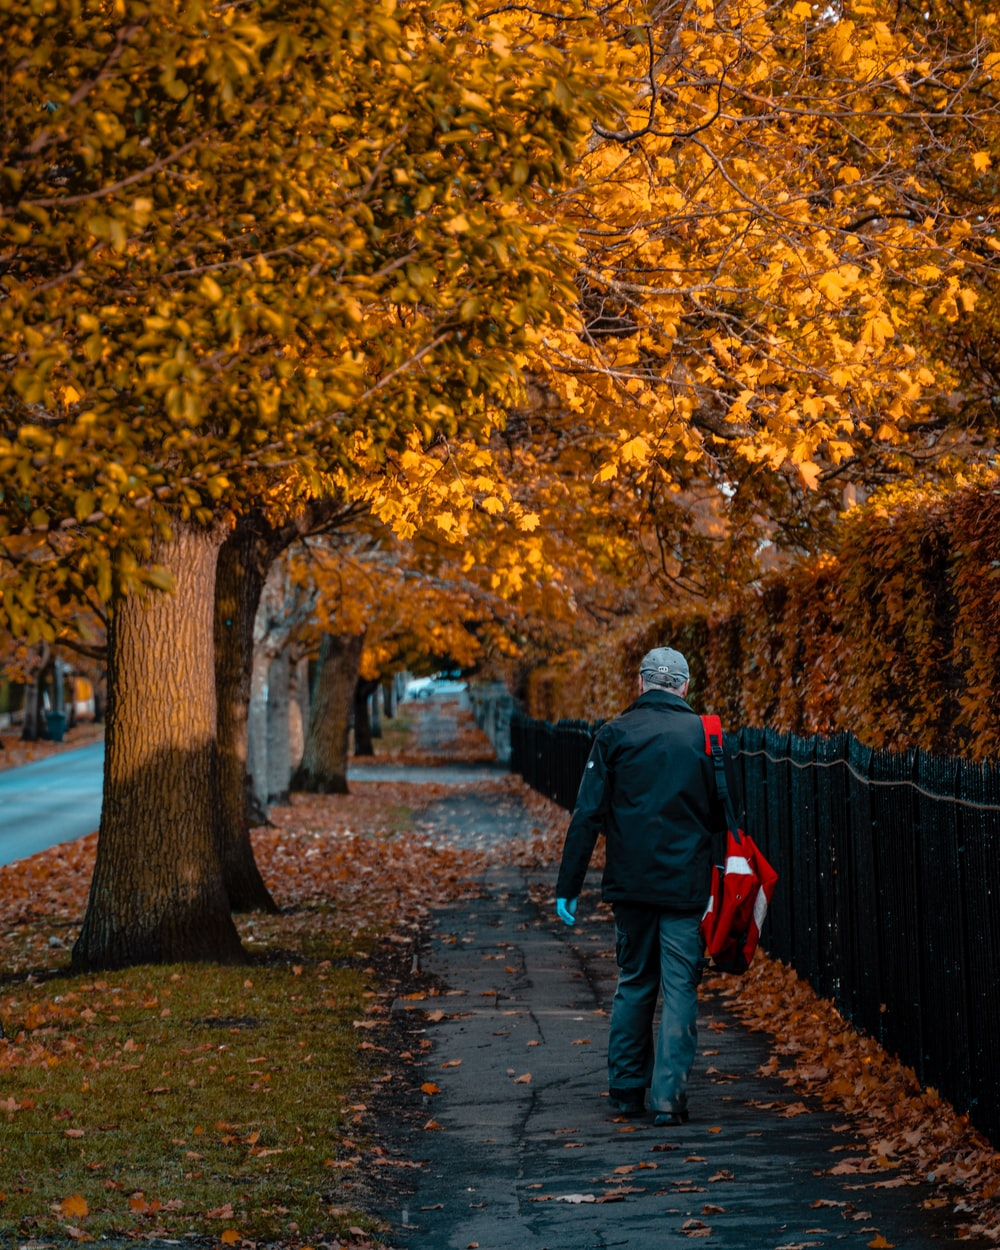 man in black jacket and red backpack walking on pathway between trees during daytime